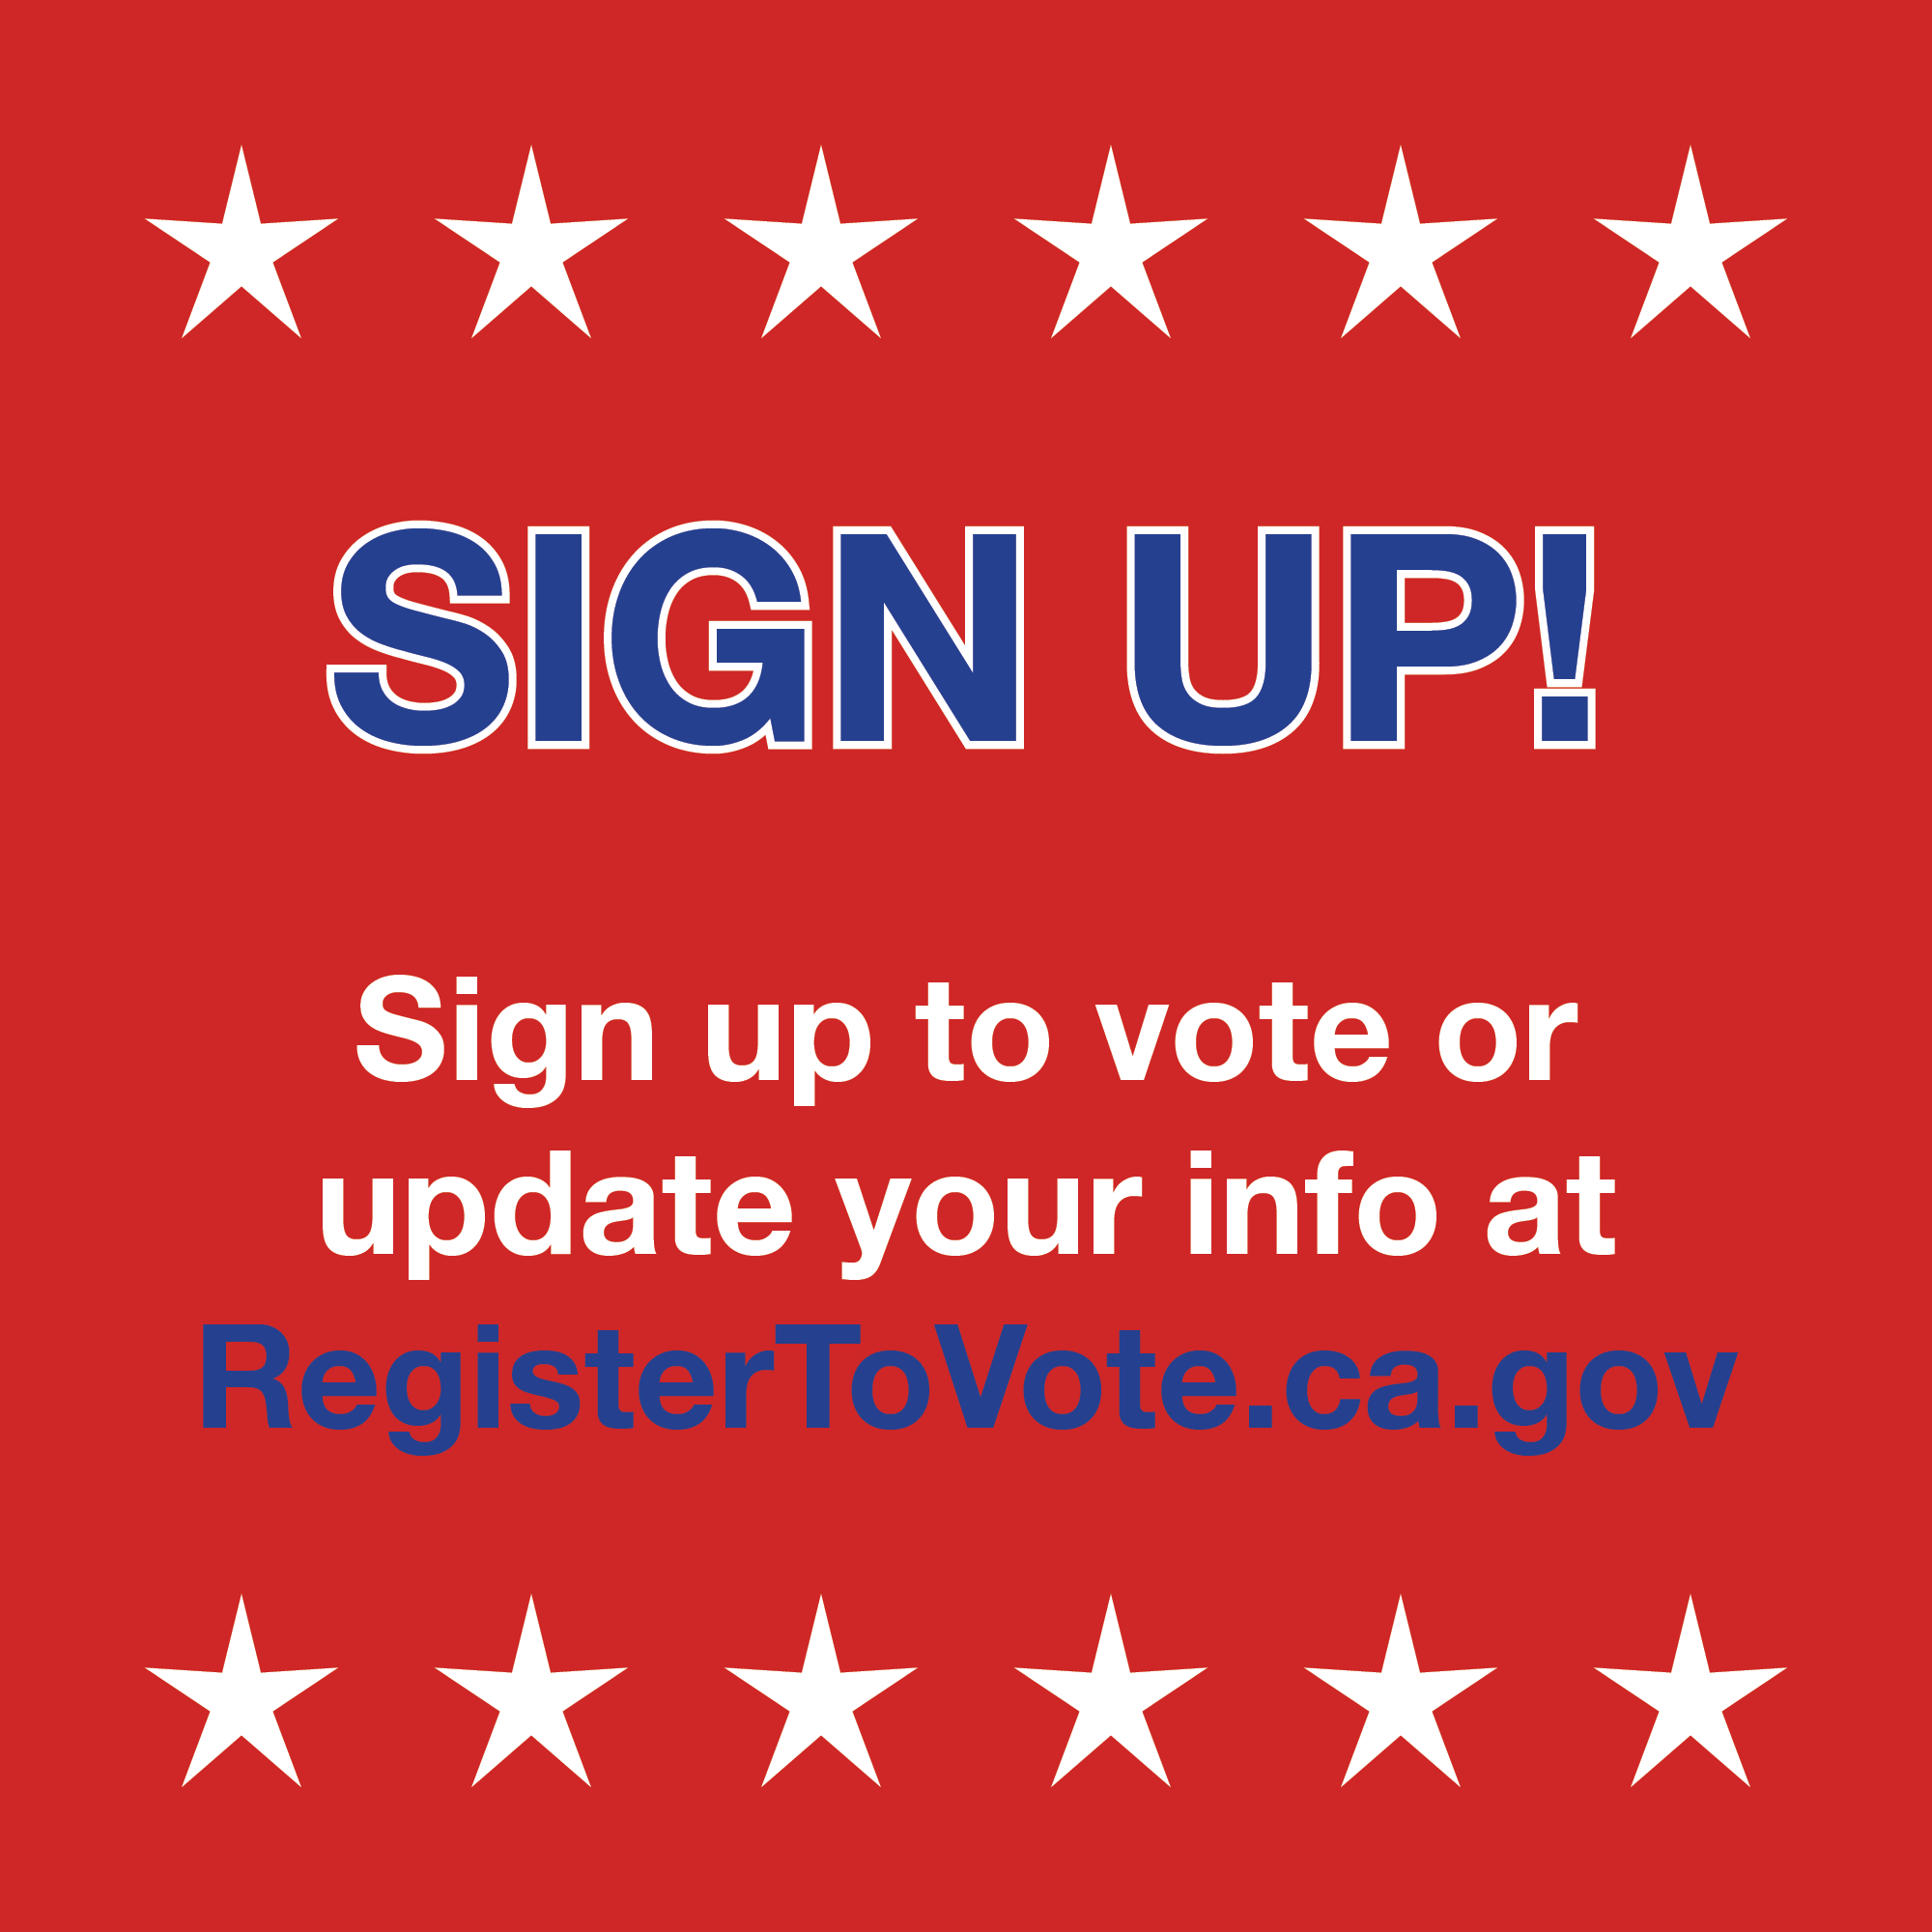 Sign up to vote or update your info at RegisterToVote.ca.gov